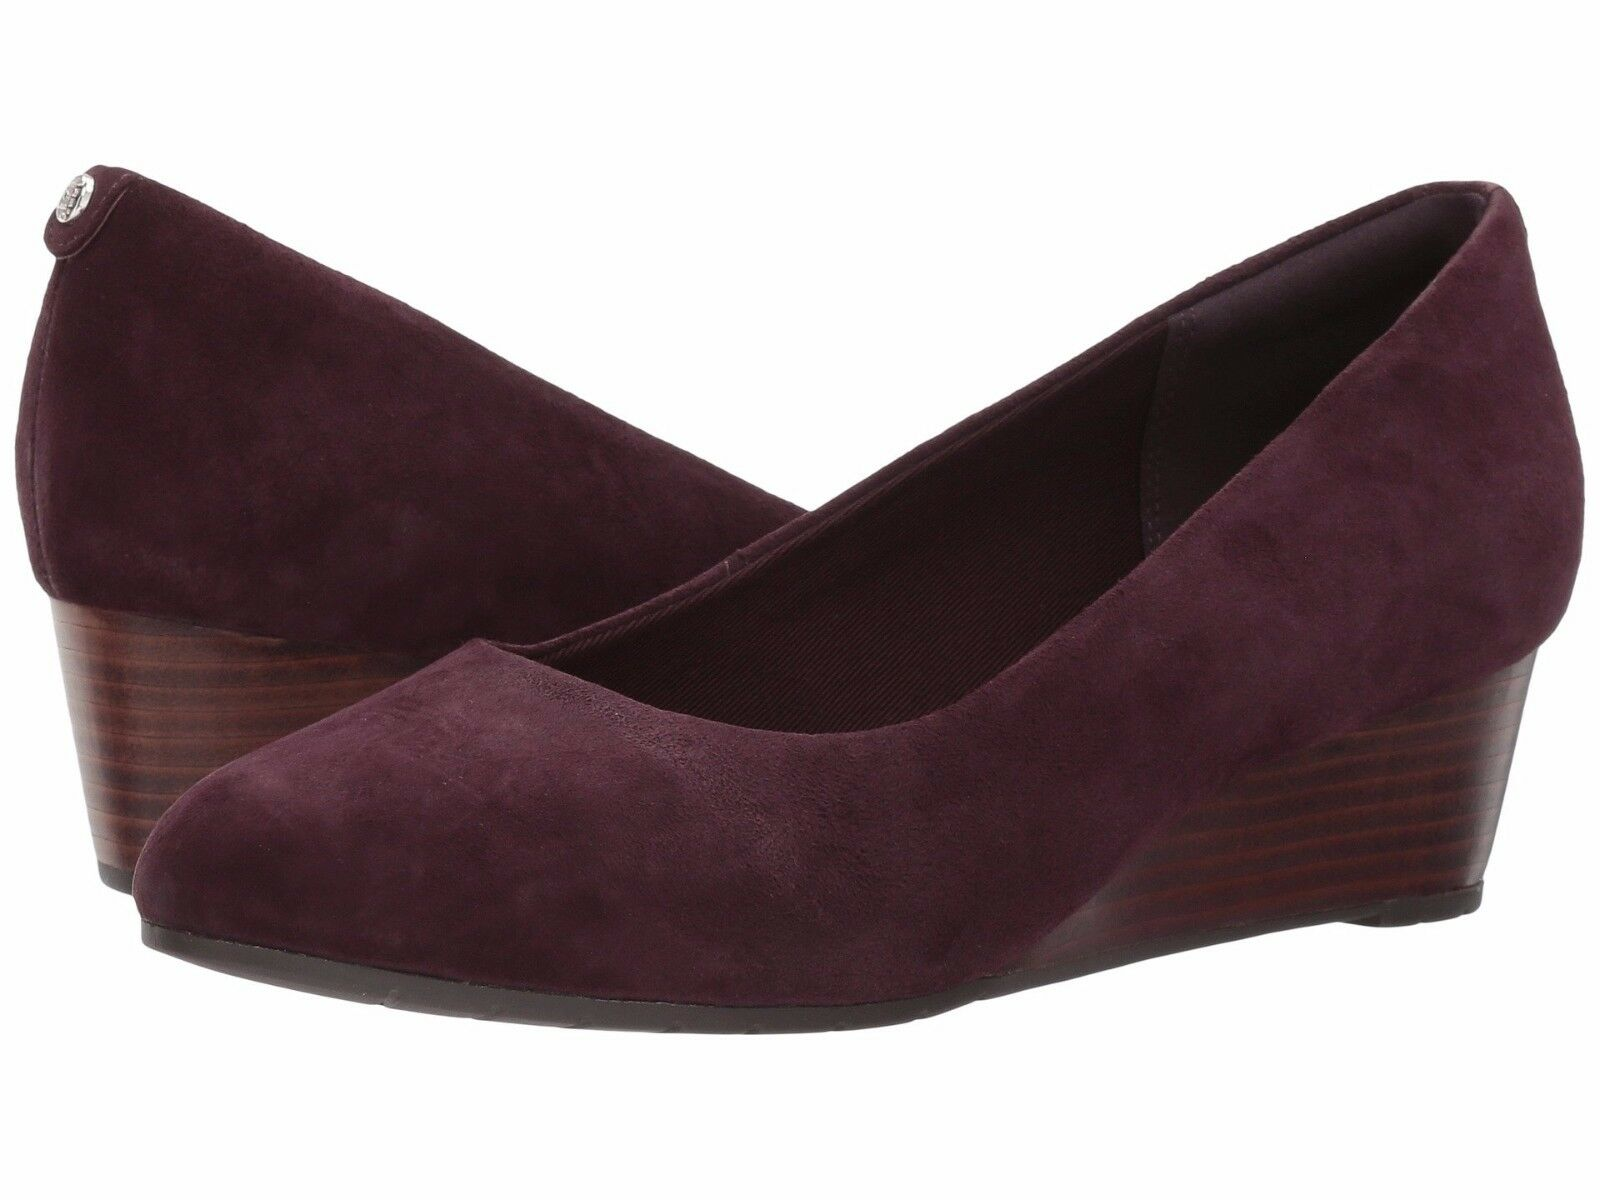 Women's shoes Clarks Vendra Bloom Classic Pump Wedges 29118 Aubergine Suede New